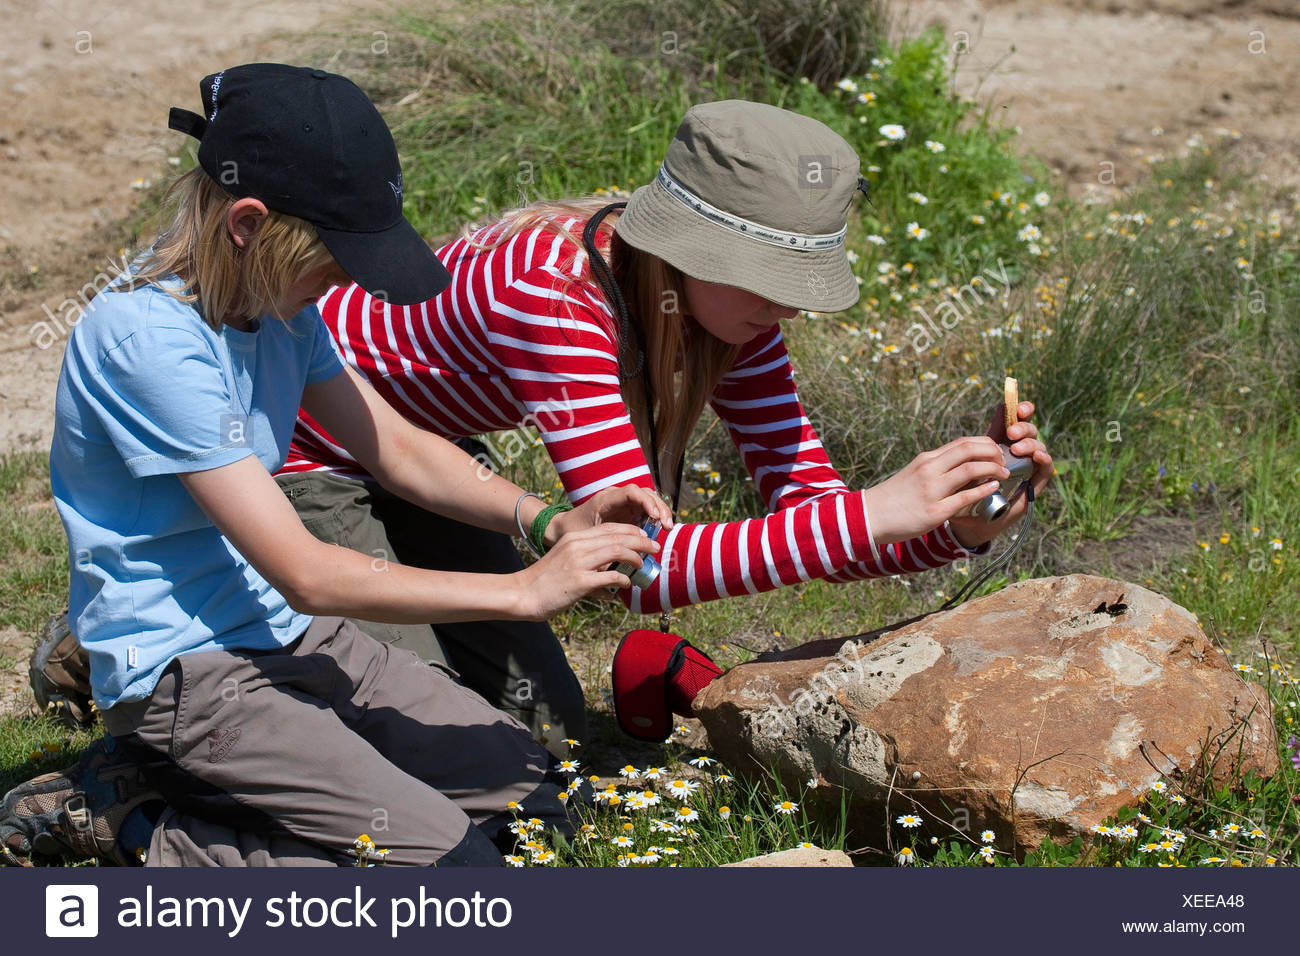 wall bee, mason bee (Megachile parietina, Chalicodoma parietina, Chalicodoma muraria), two children taking photos from wall bees on a stone, Germany - Stock Image